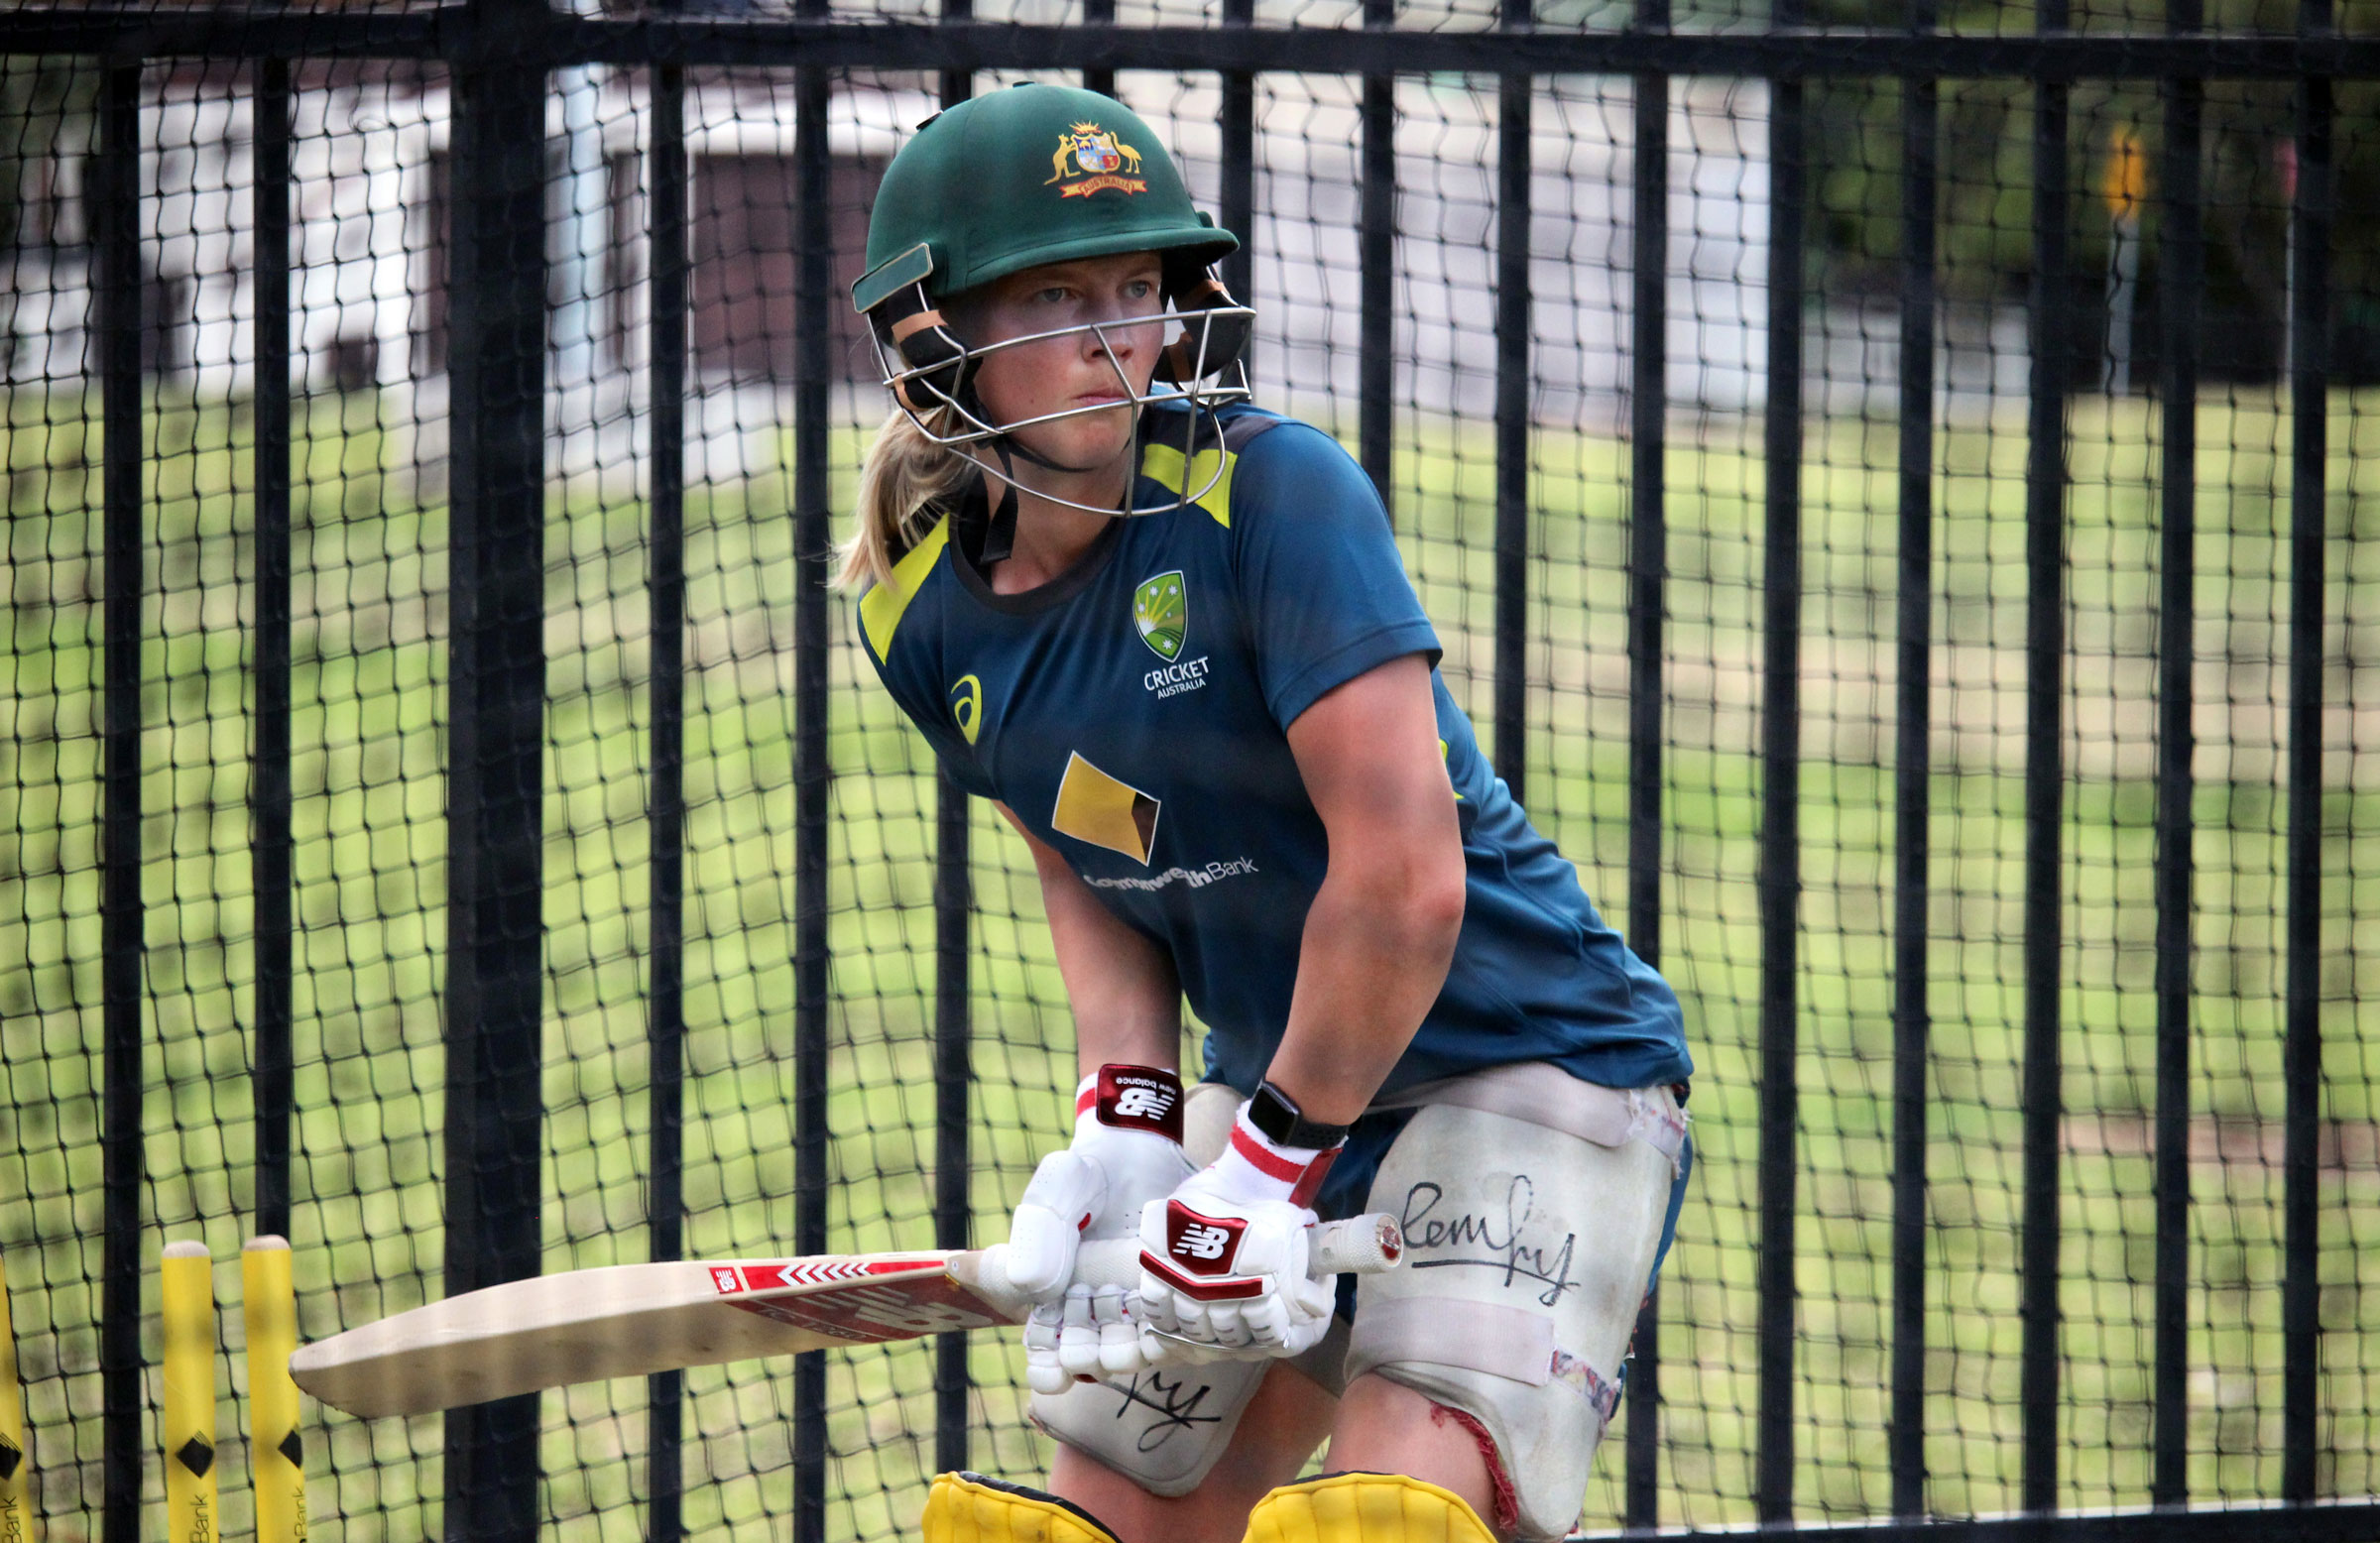 Lanning all focus in the nets // cricket.com.au